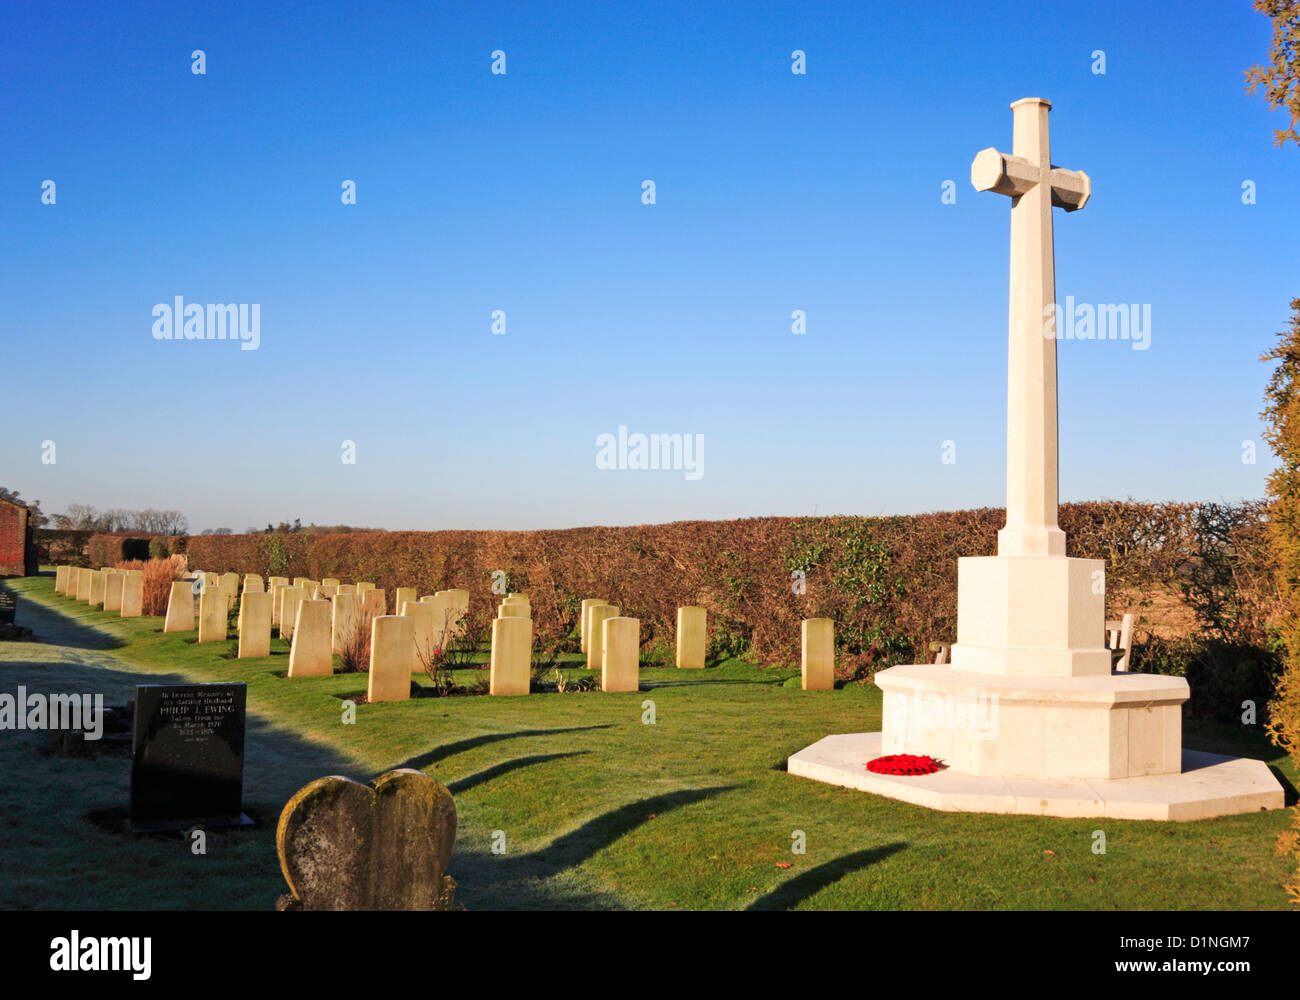 A view of the war graves plot and headstones for service personnel at Scottow Cemetery, Norfolk, England, United Stock Photo